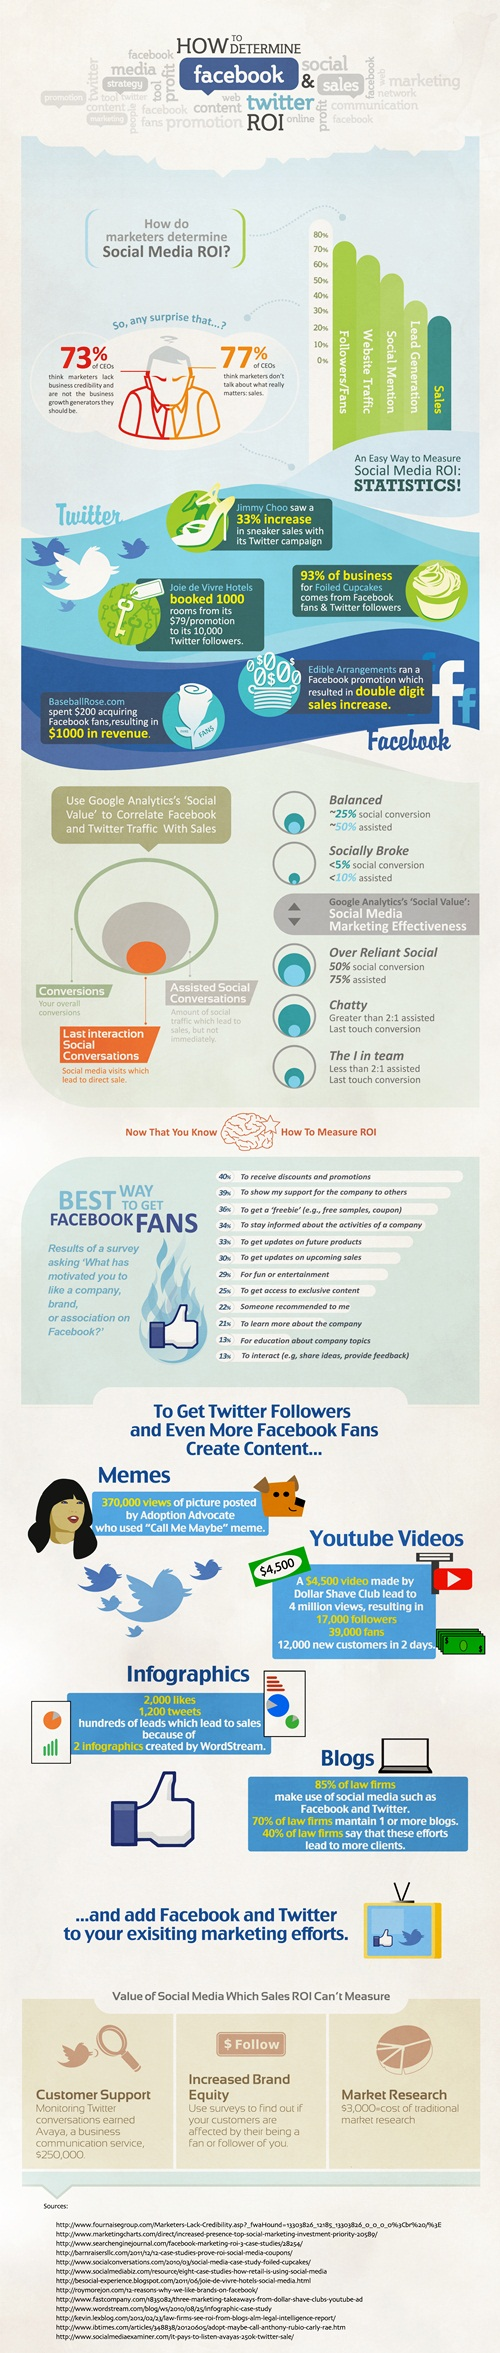 Infographic to determine facebook and twitter ads ROI